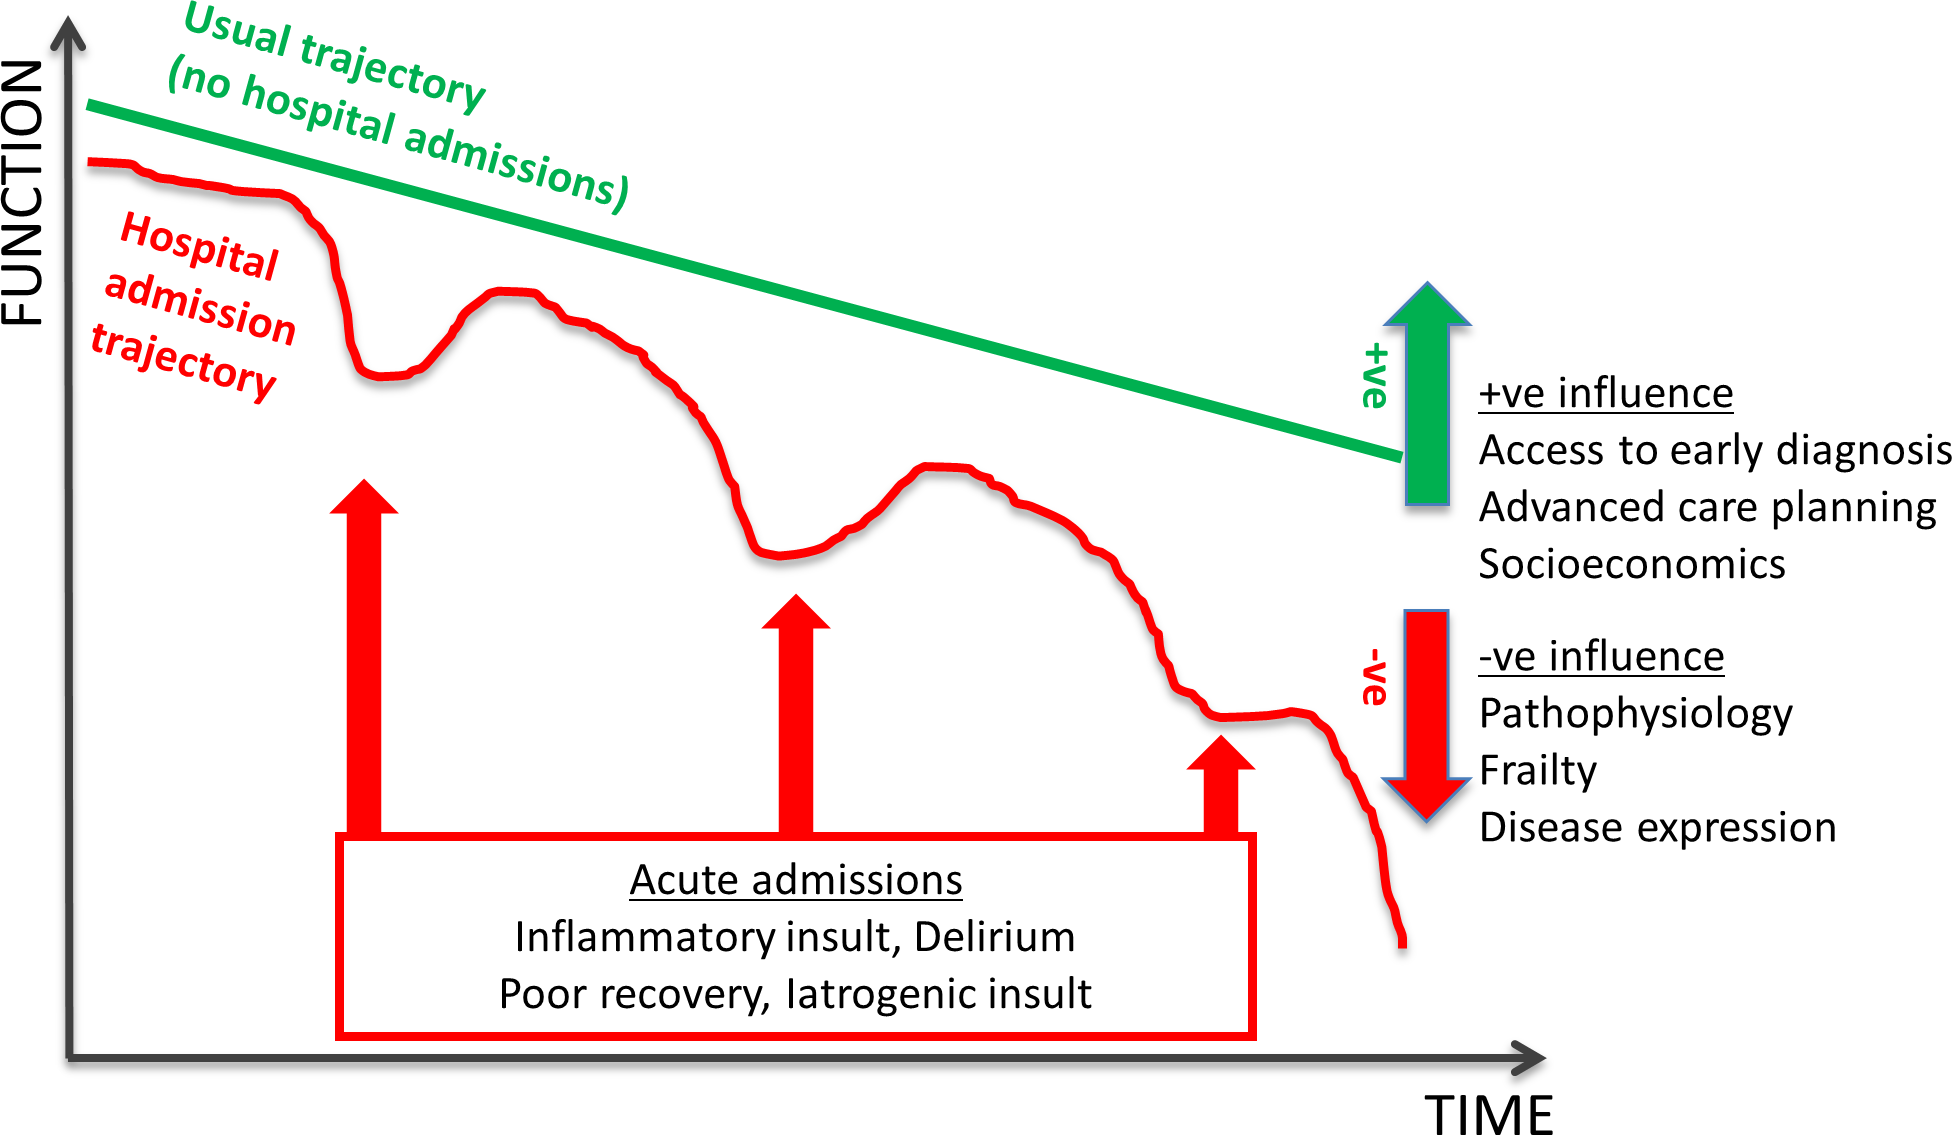 Schematic representation of dementia disease trajectory over time influenced by hospital admission.